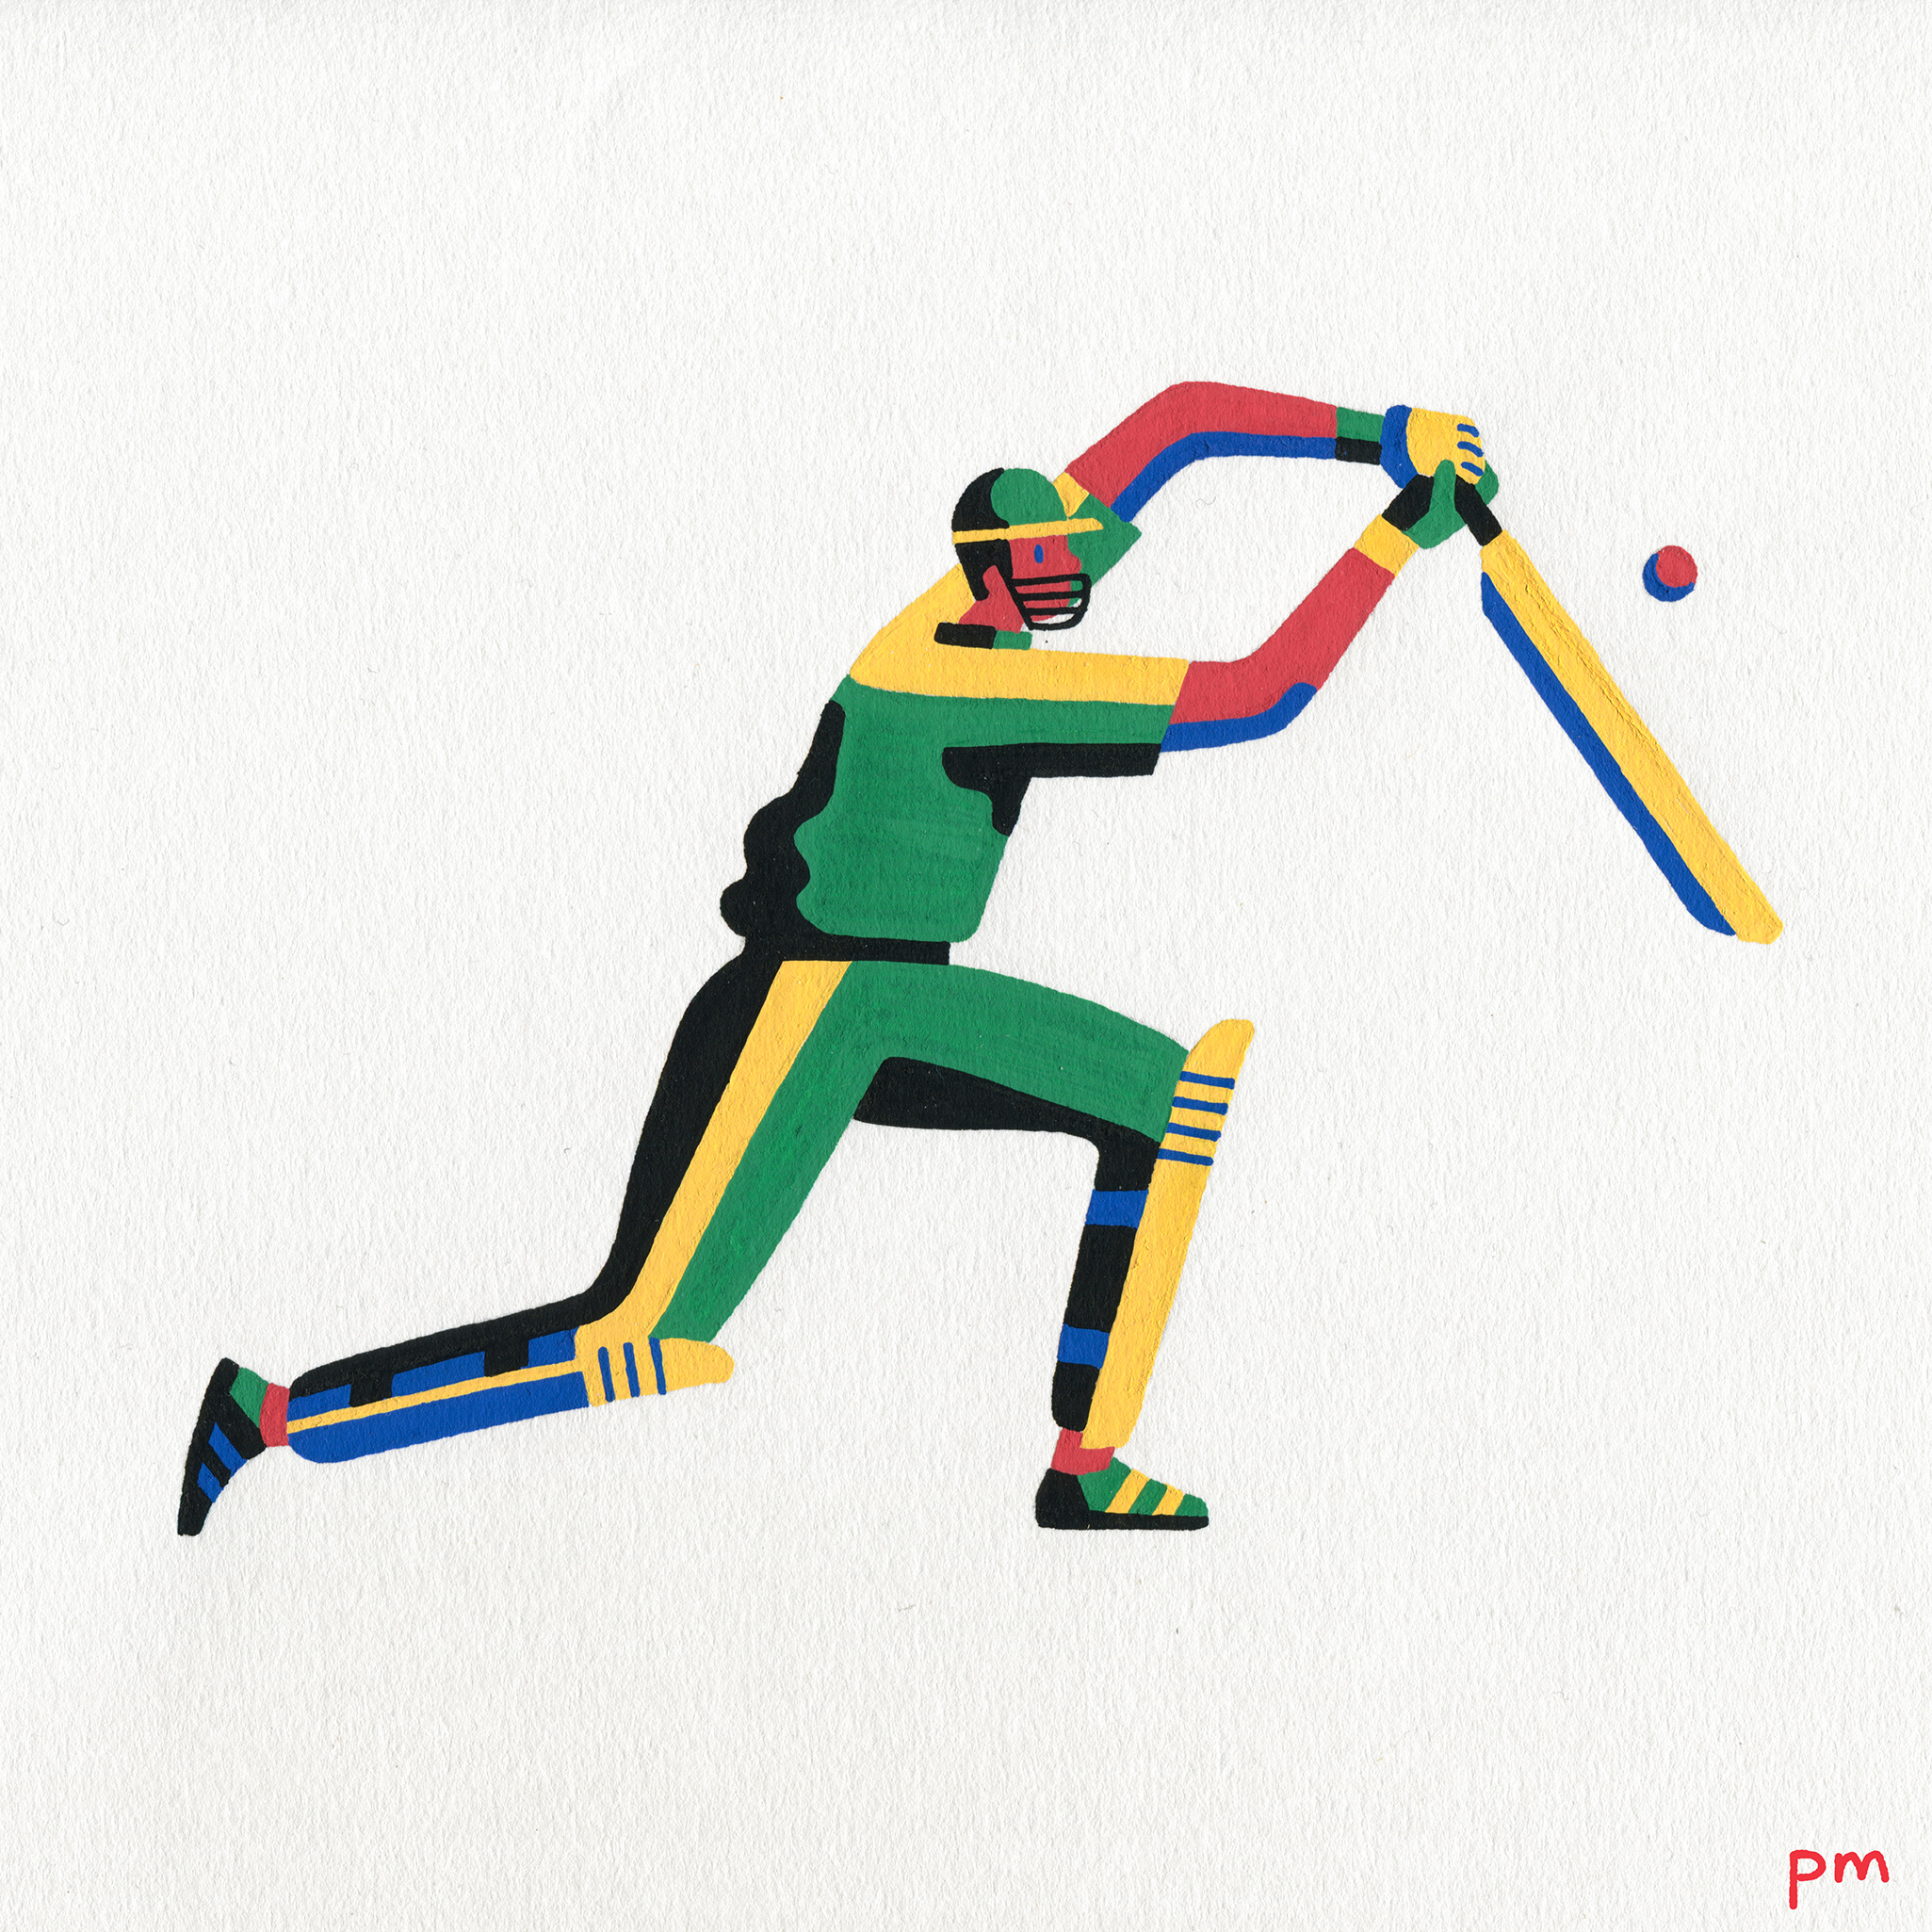 Here is a painted illustration of a batsman playing cricket, I hand drew these using posca markers